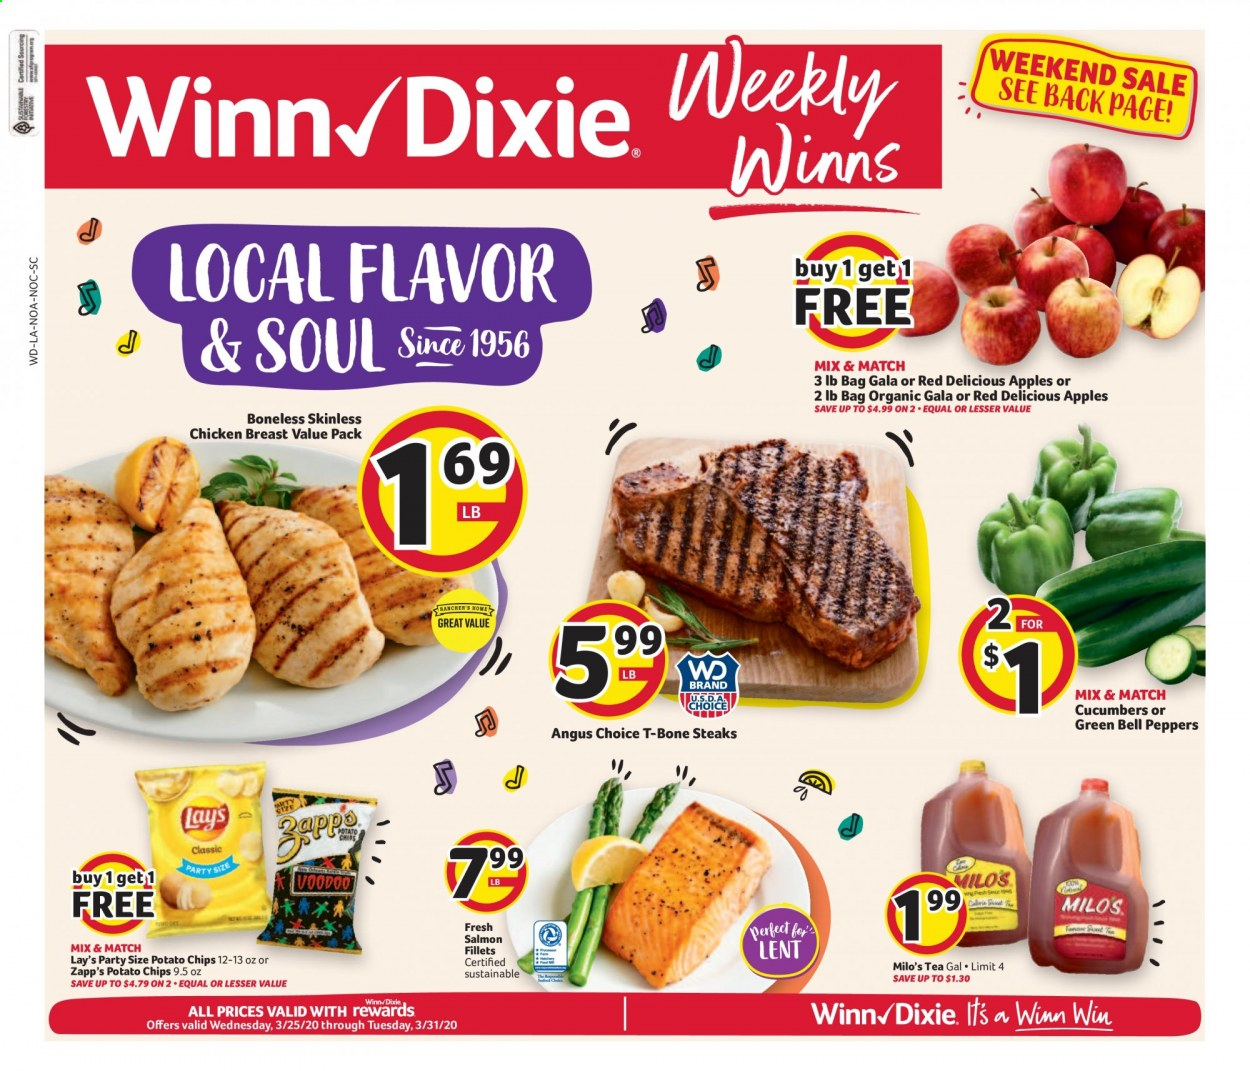 Winn Dixie Flyer - 03.25.2020 - 03.31.2020 - Sales products - bell peppers, cucumbers, peppers, apples, Red Delicious, chicken, chicken breast, t-bone steak, salmon, potato chips, chips, Lay's, tea. Page 1.